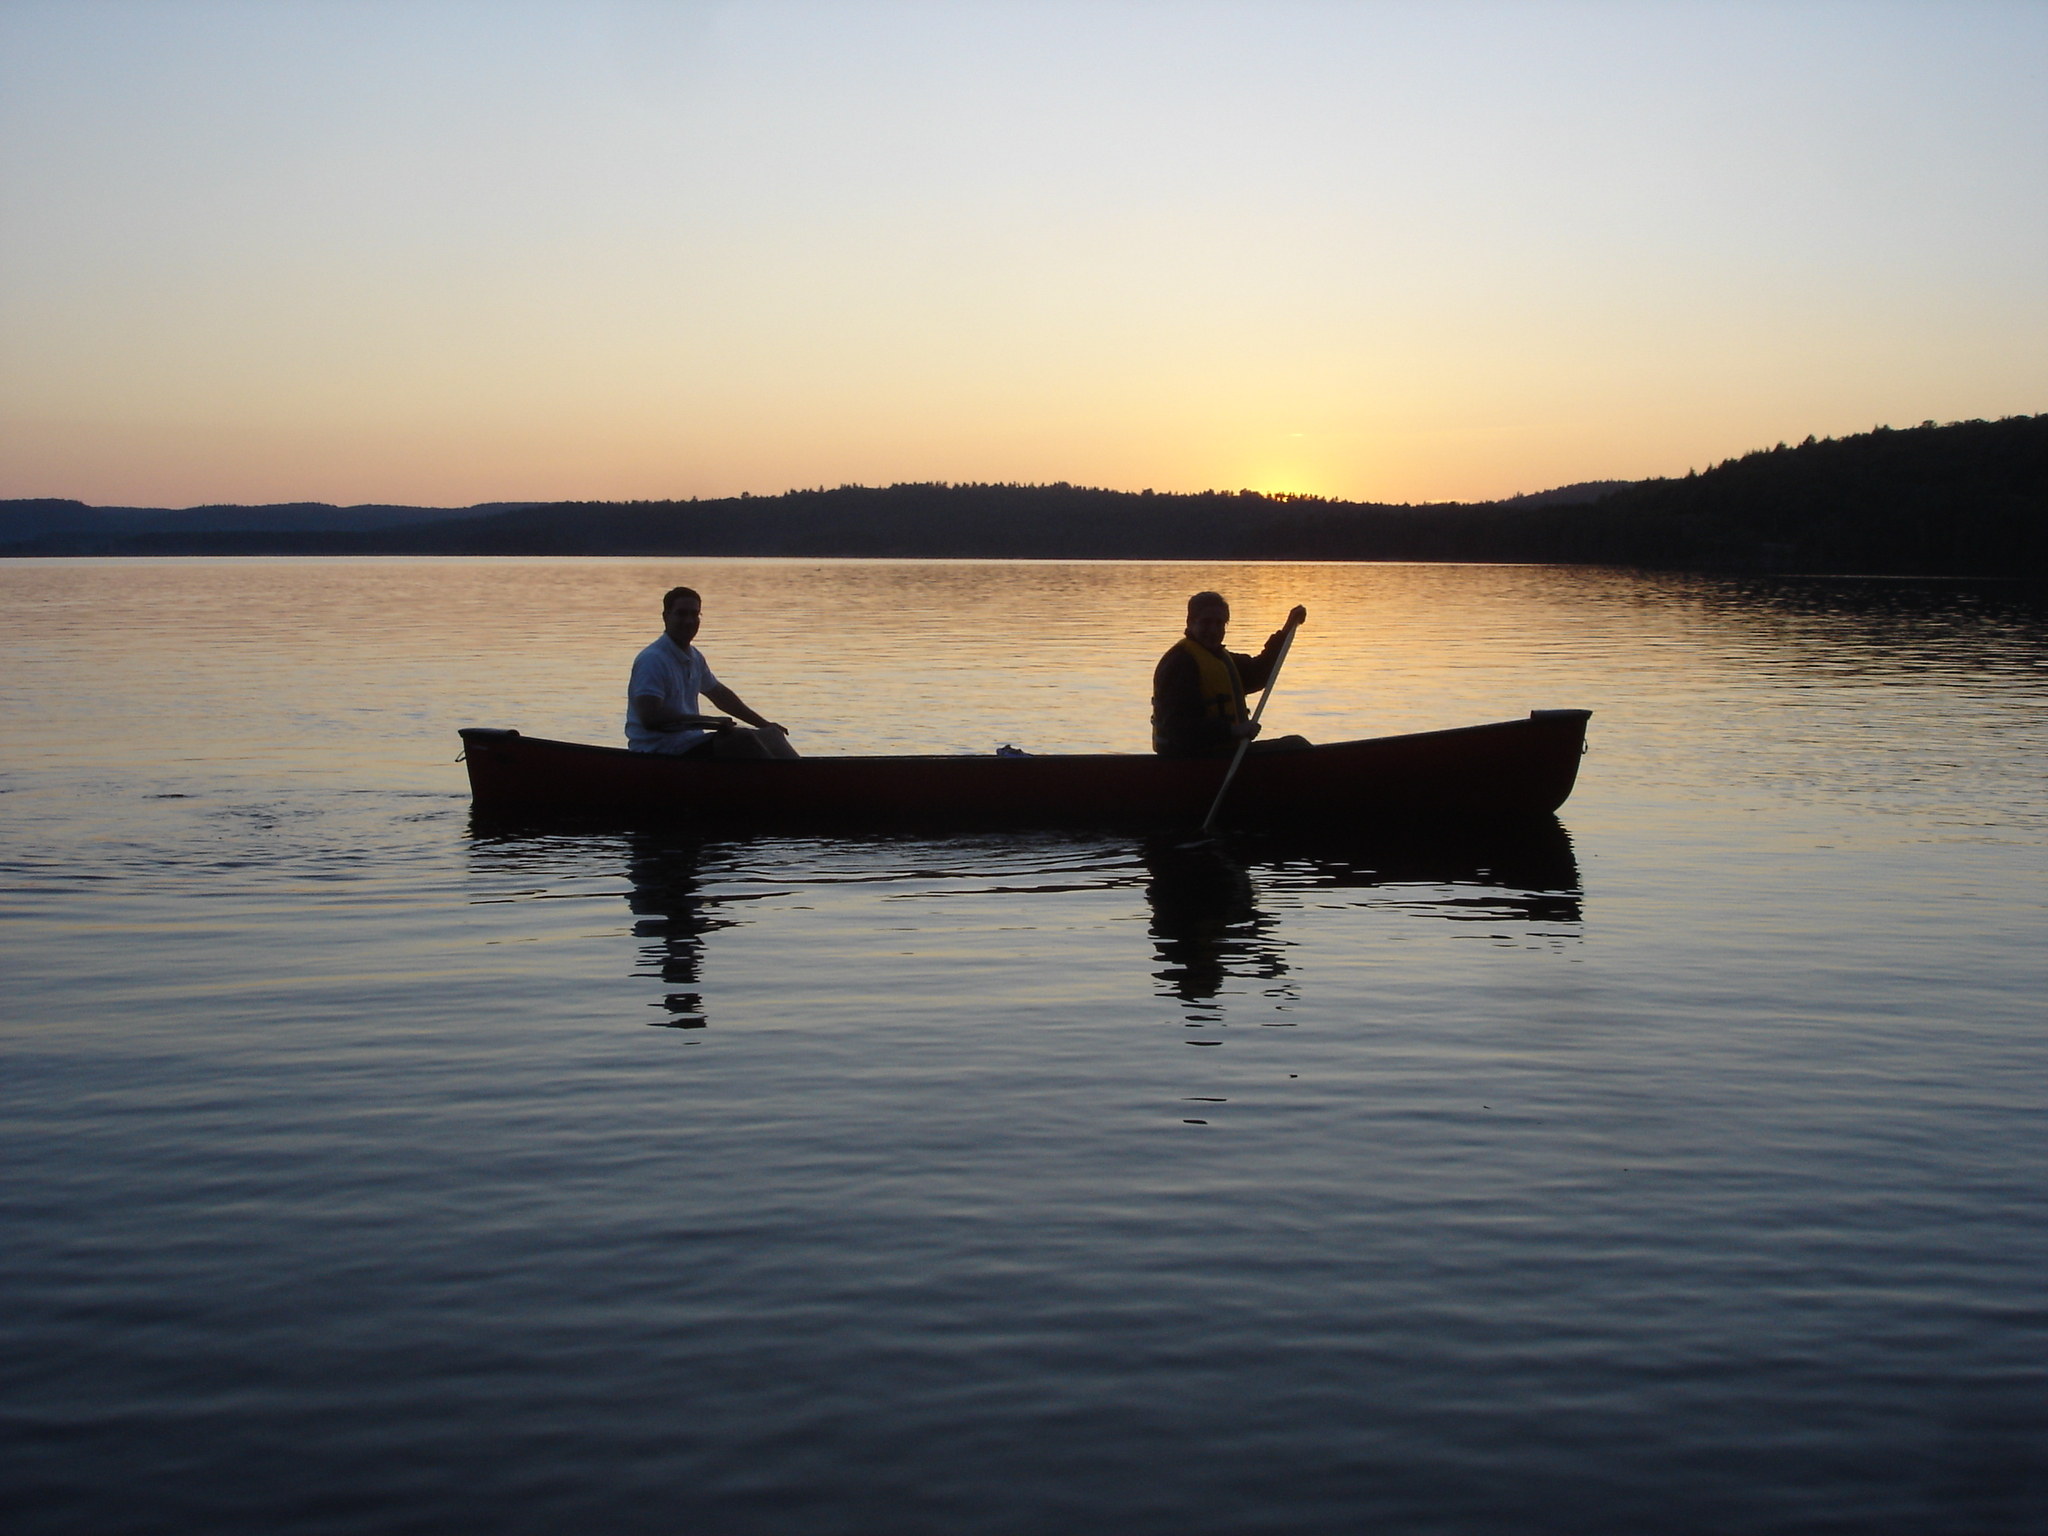 two men paddling in a canoe on a lake at dusk